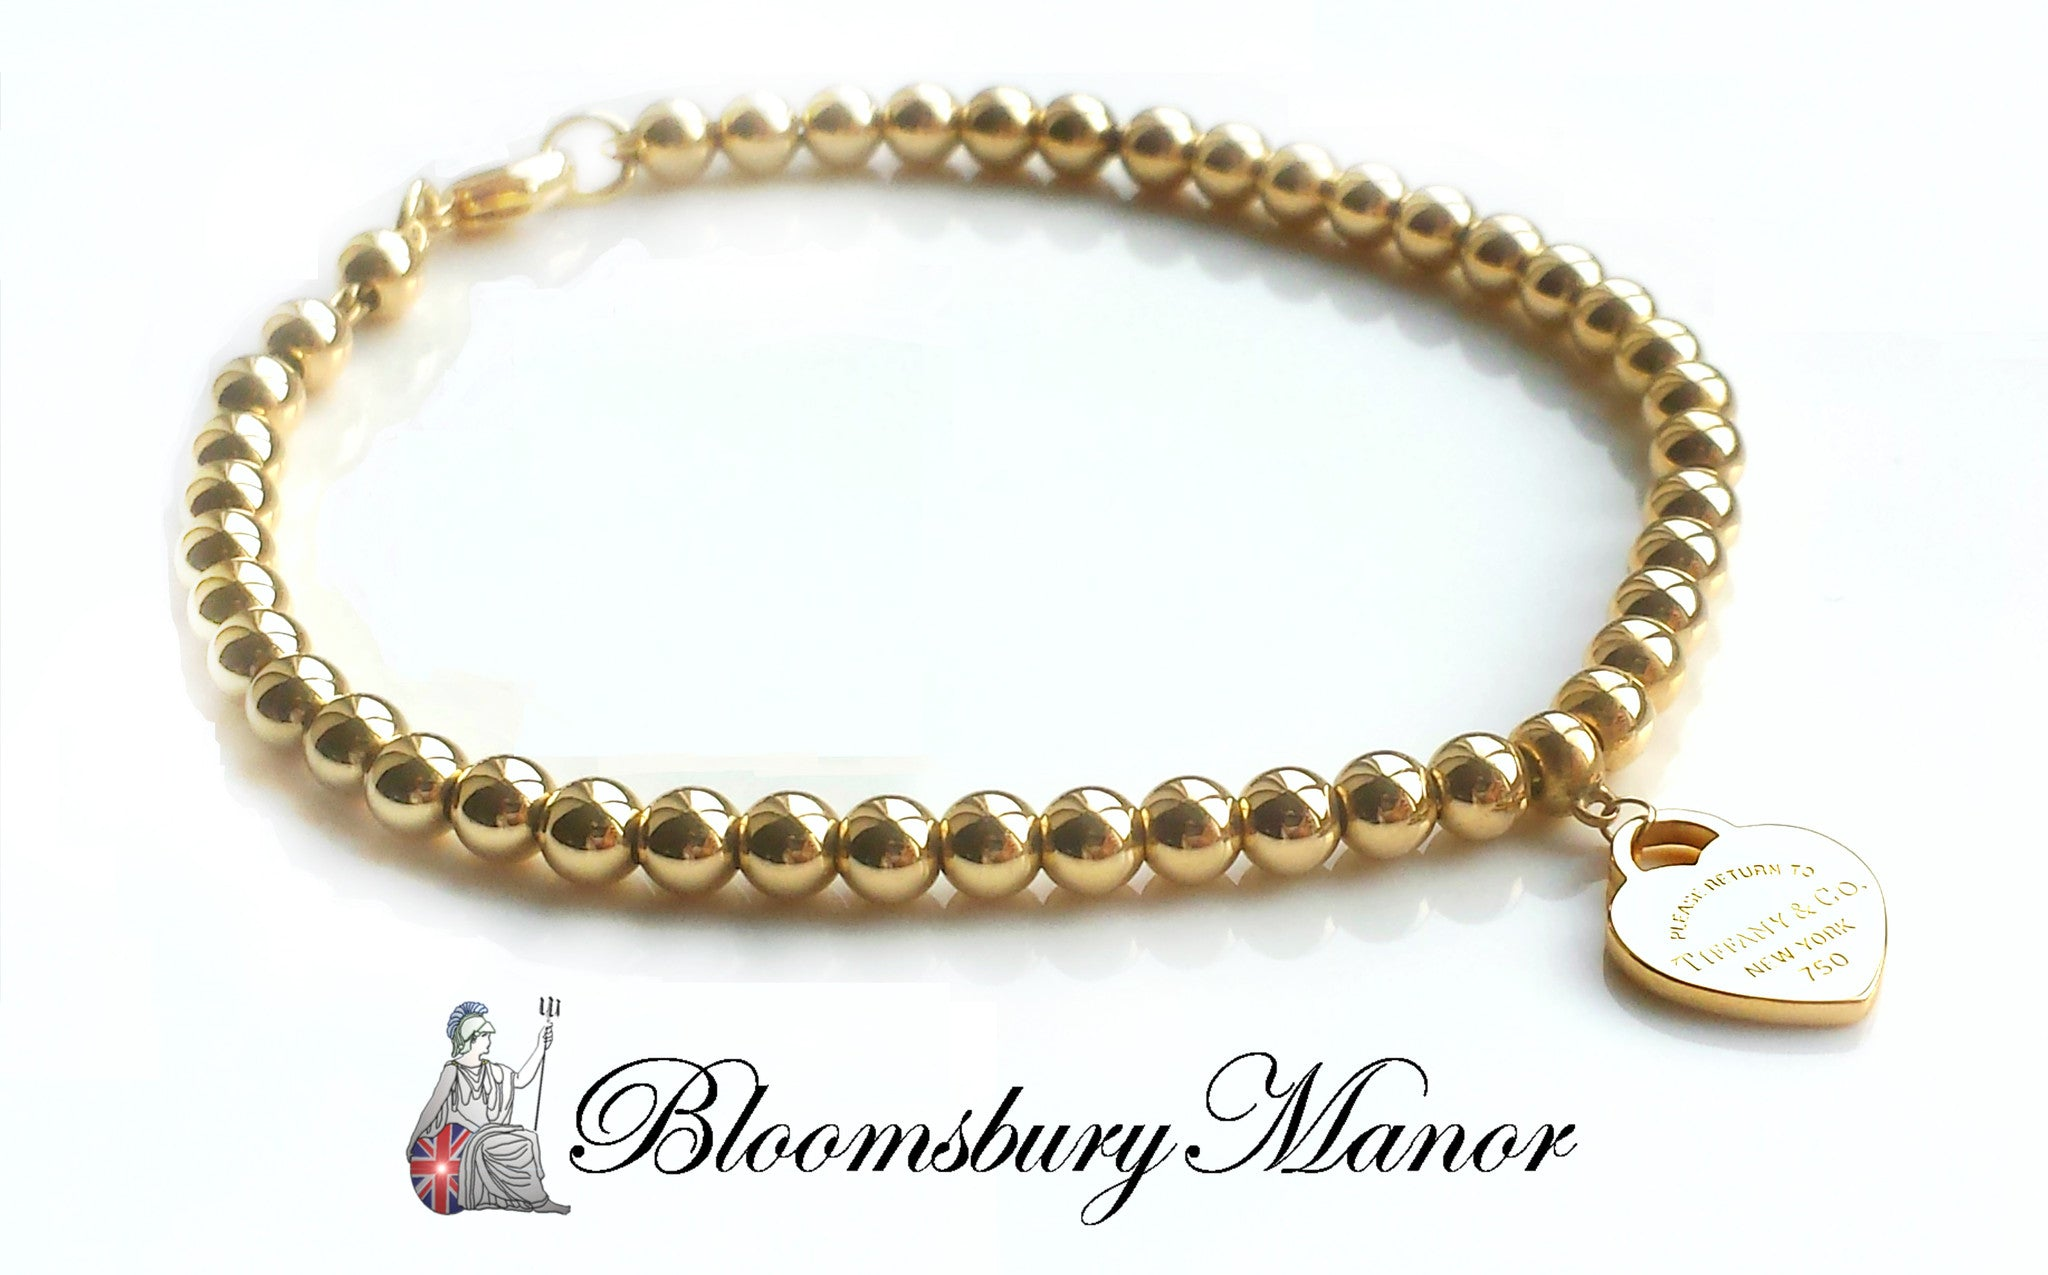 d7e1c23af Tiffany & Co. Return to 18k Yellow Gold Bead Bracelet & Mini Heart Tag -  Bloomsbury Manor Ltd